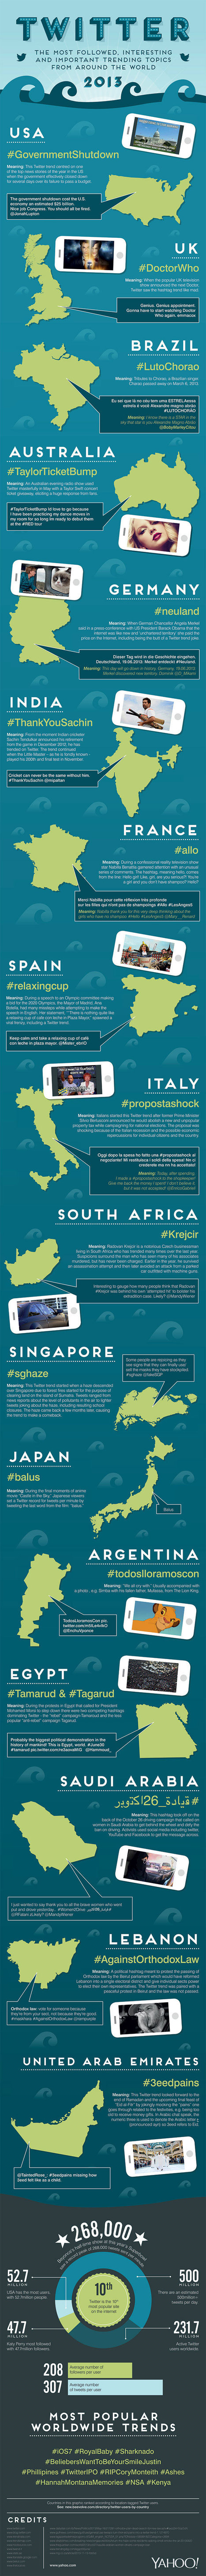 """The Top Twitter Trends Of 2013 [INFOGRAPHIC] 